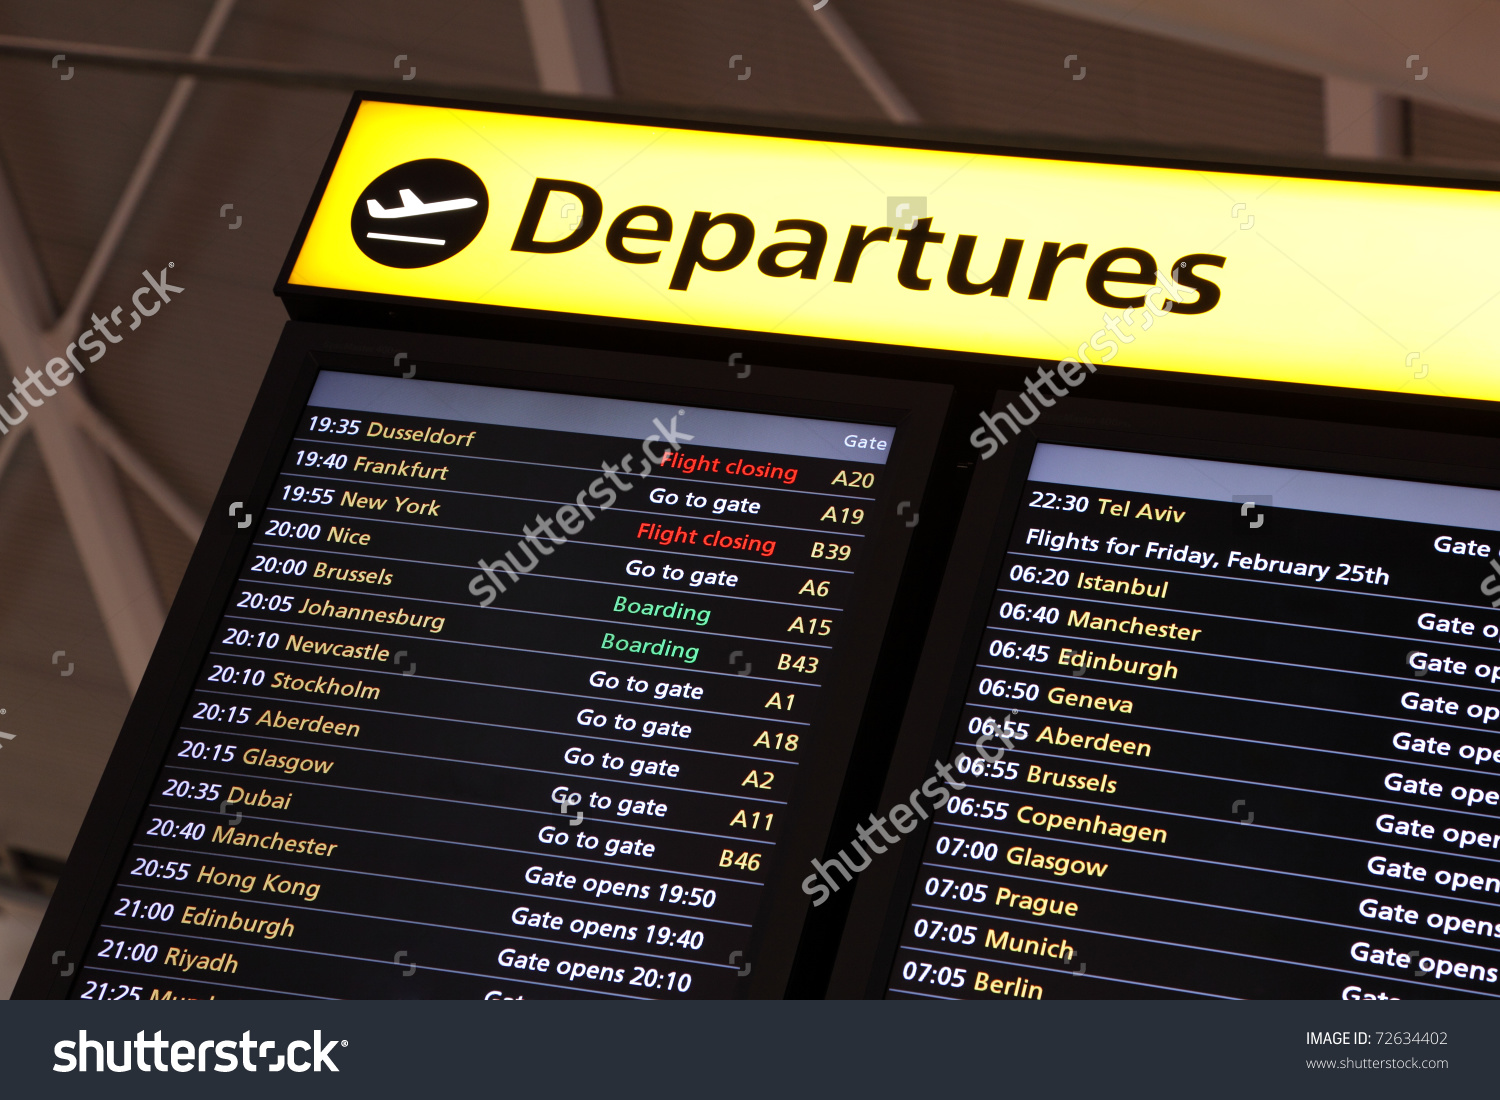 Airport Flight Information On Large Screen Stock Photo 72634402.